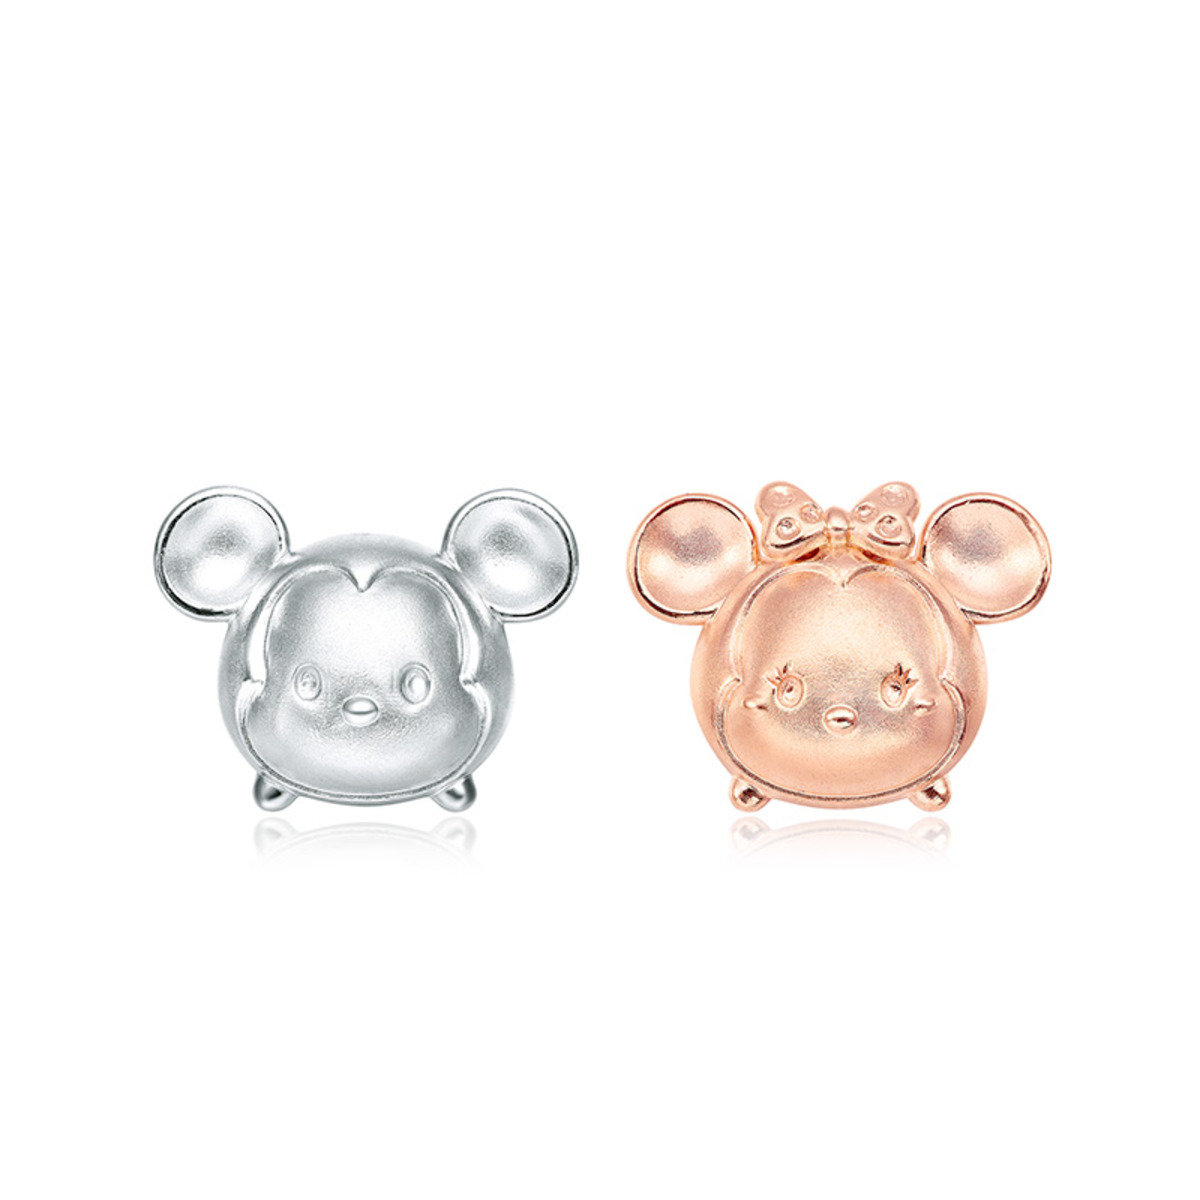 Disney Tsum Tsum Collection: Mickey Mouse and Minnie Mouse 18K/750 White, Rose Gold Earrings